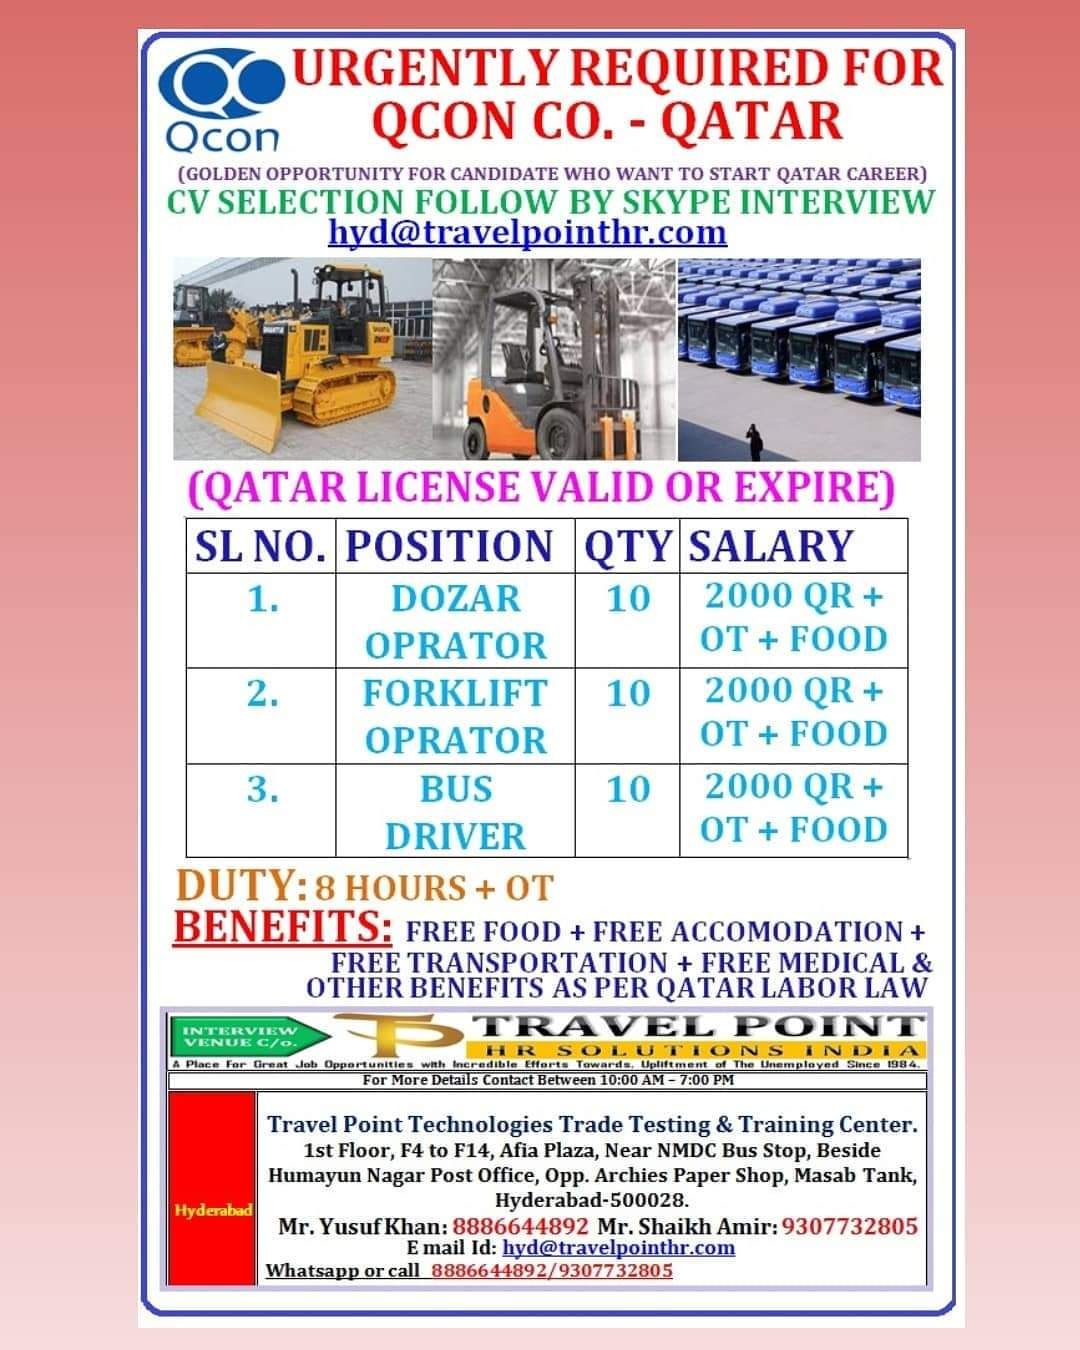 URGENTLY REQUIRED FOR QCON CO. – QATAR